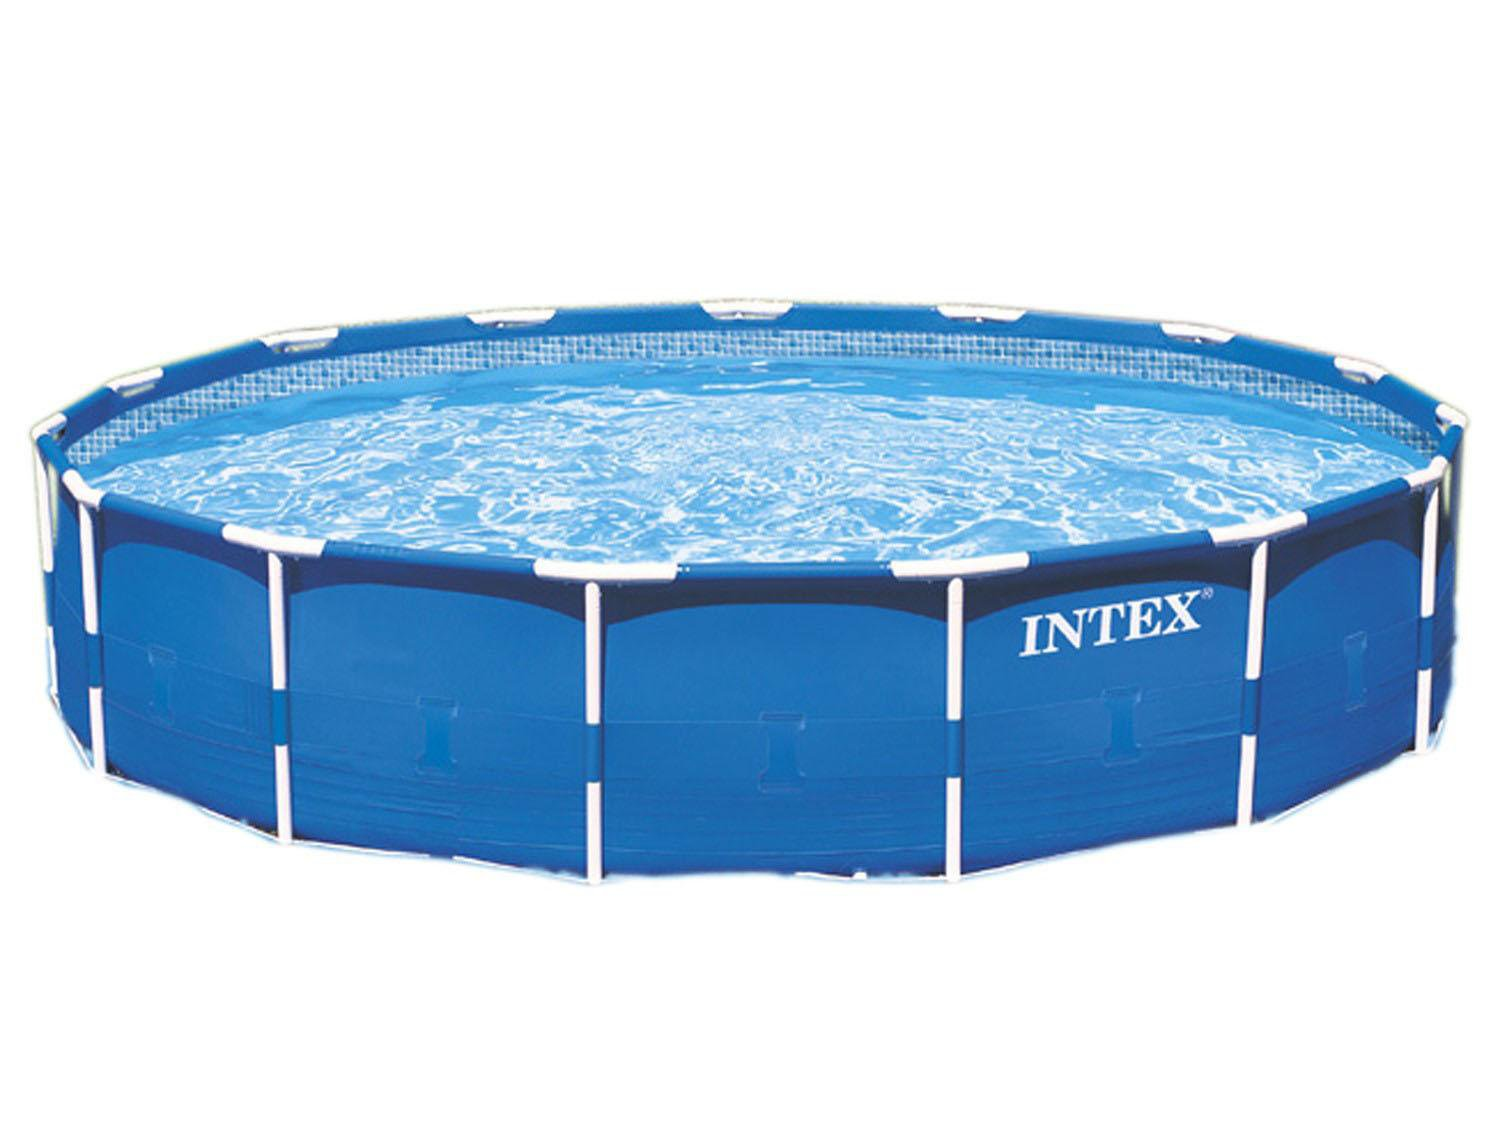 Filtros para piscinas intex piscinas intex of filtro para for Filtro piscina intex